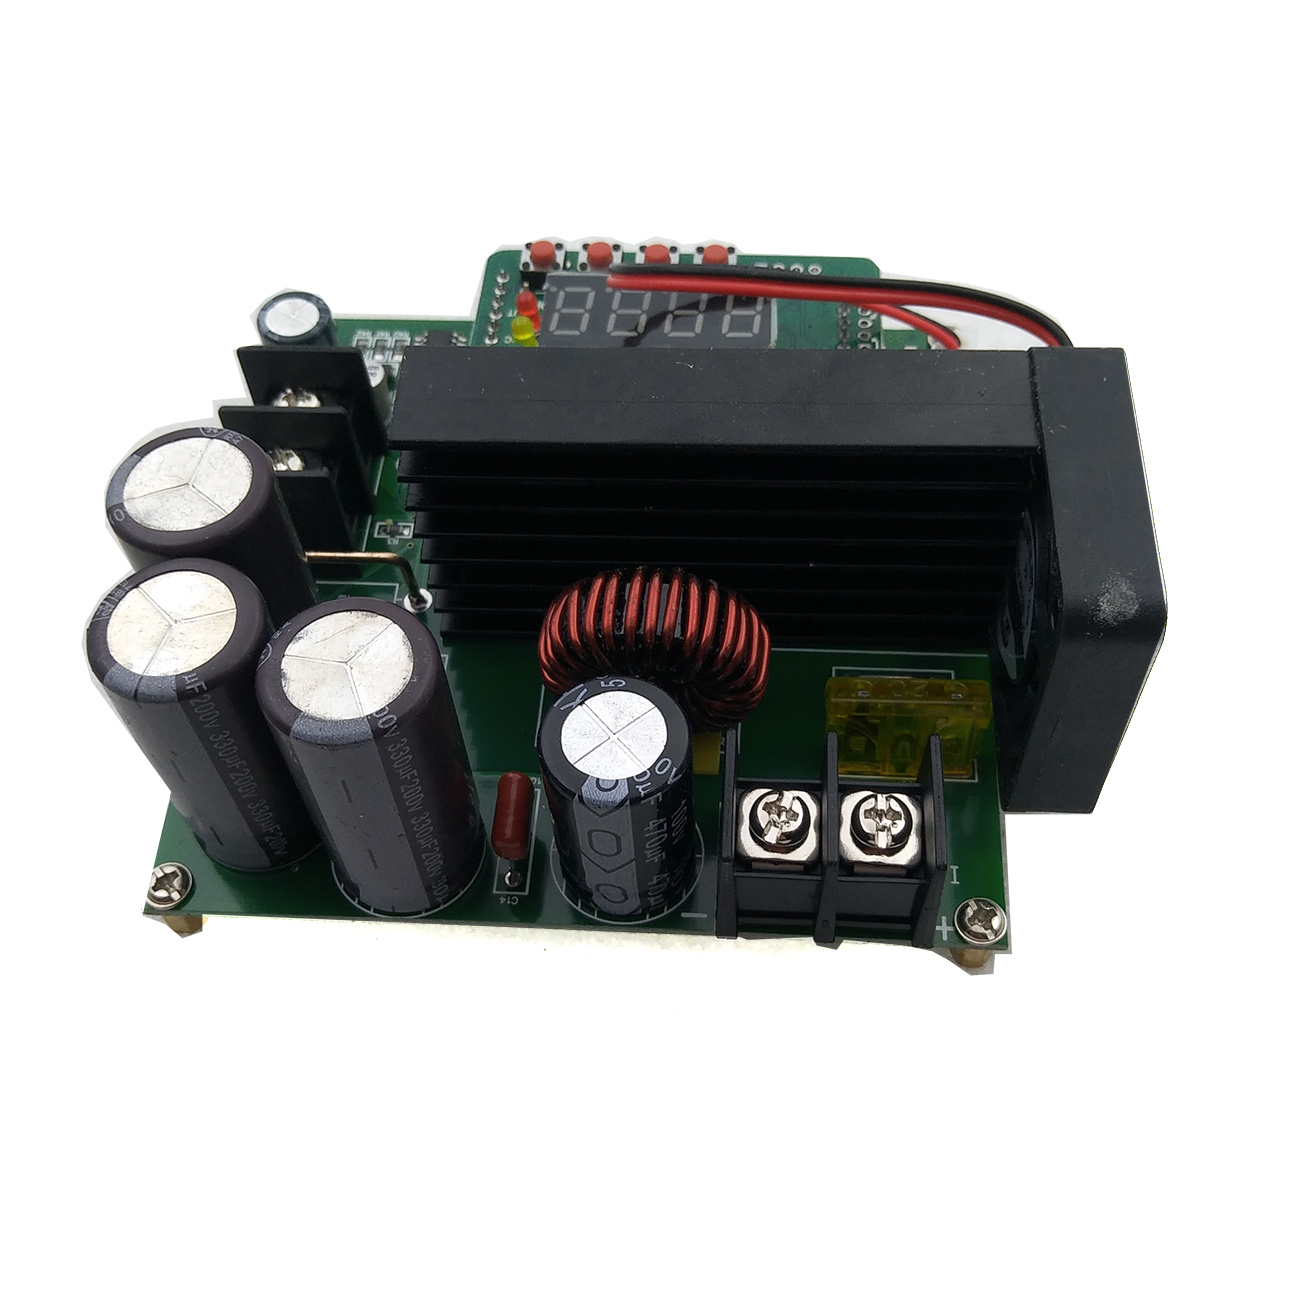 Image 3 - 5pcs/lot B900W adjustable impulse module Current Transformer Voltage Regulator Module Input Constant 8 60v to 10 120v 900w-in Integrated Circuits from Electronic Components & Supplies